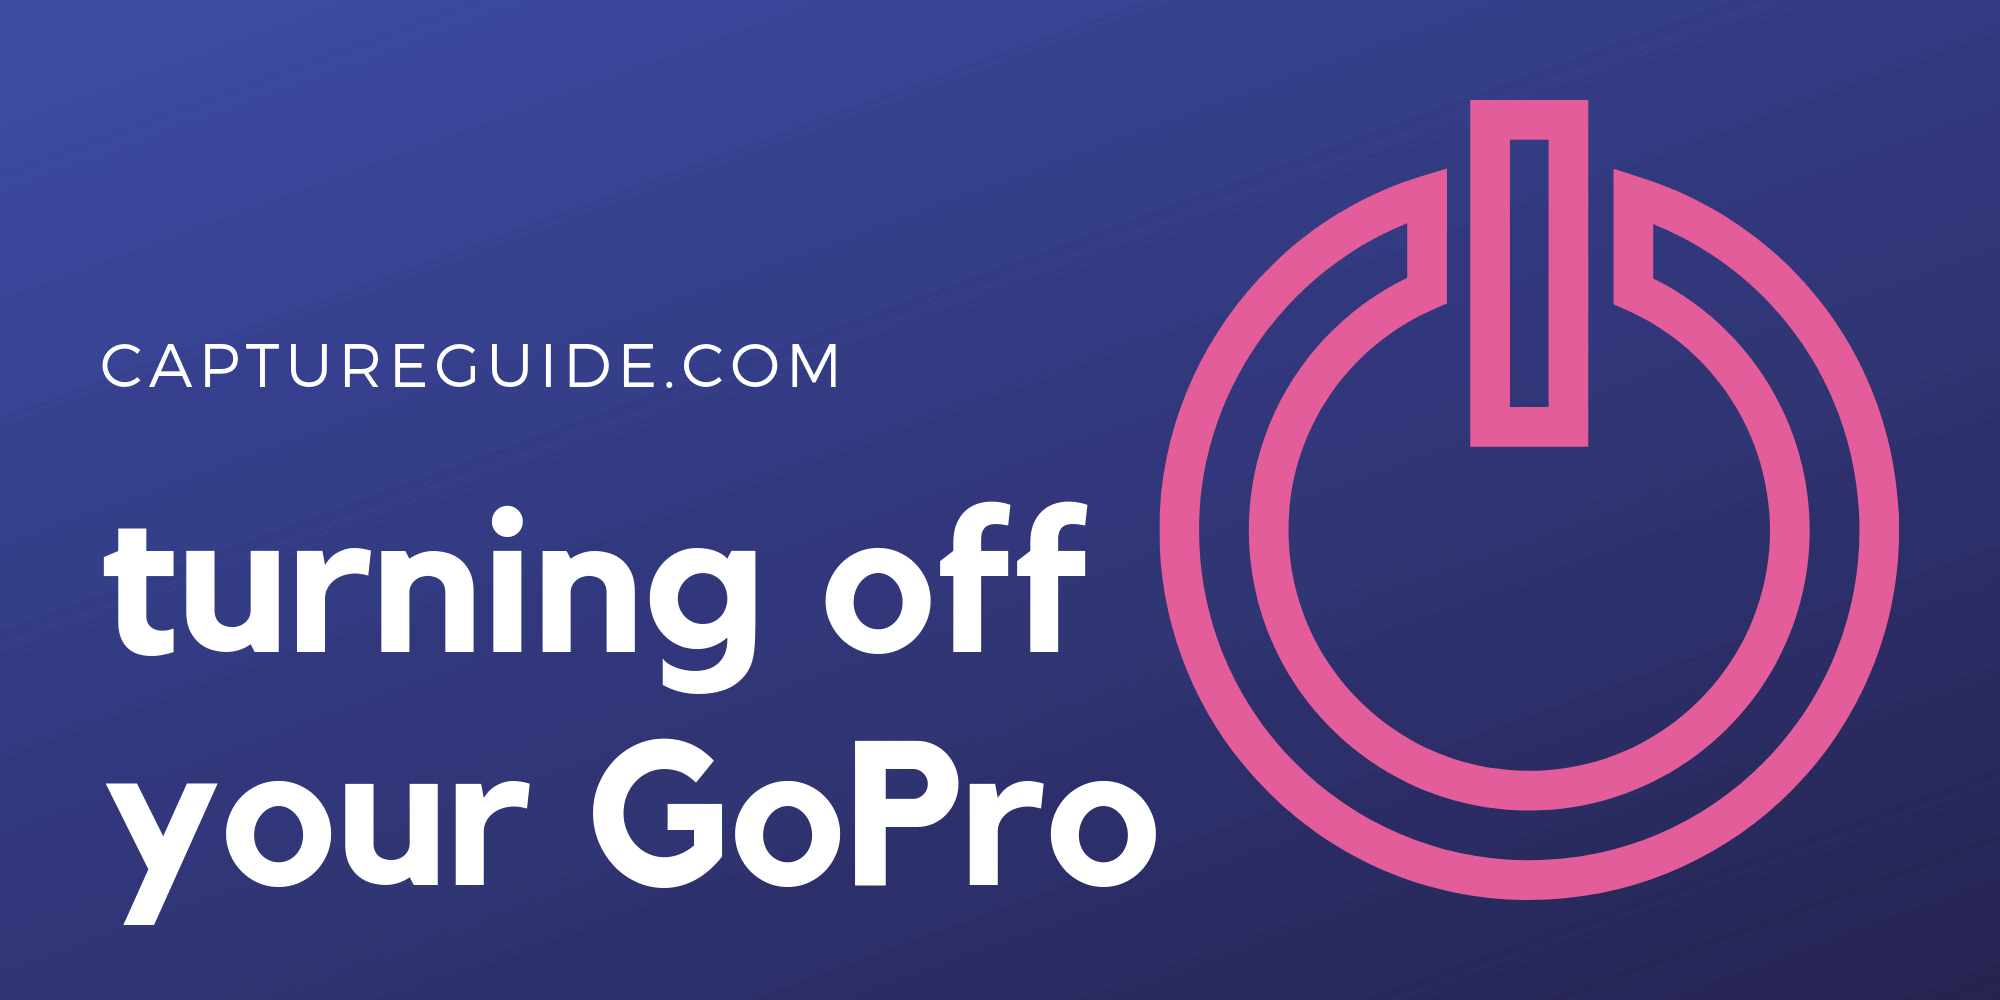 how to turn off GoPro featured image